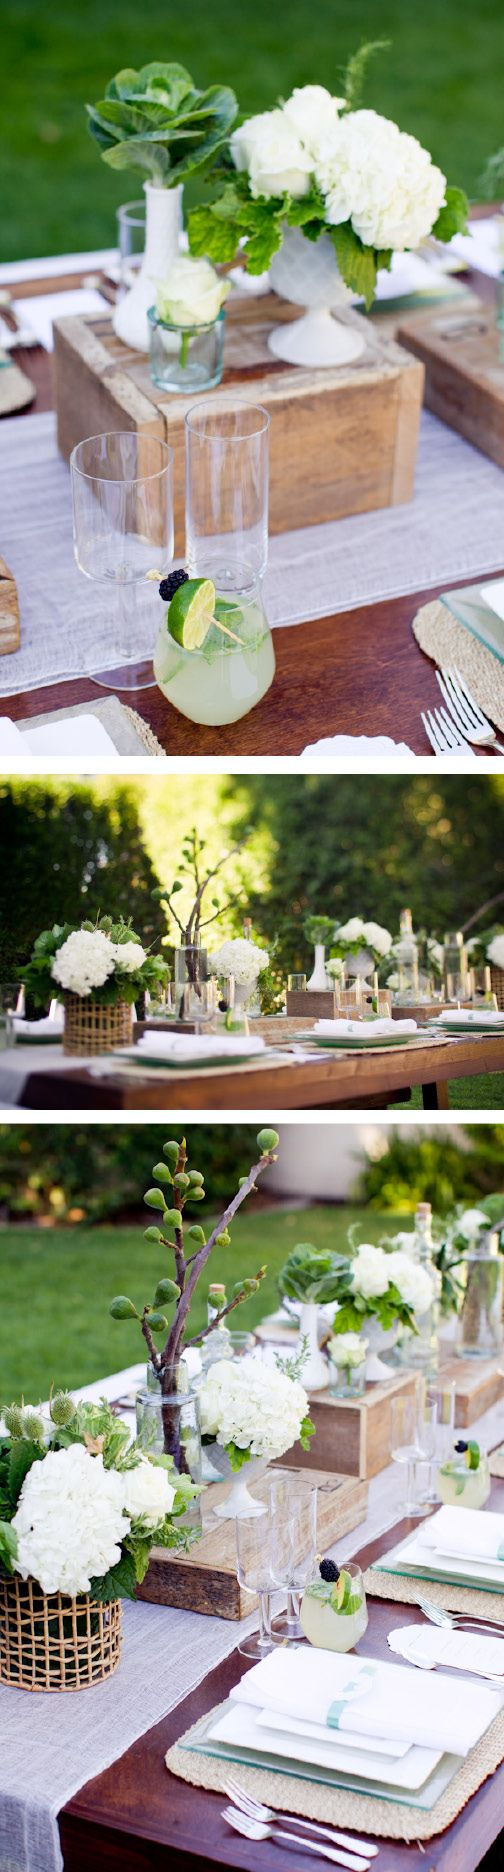 wood farmhouse table with benches and crisp contemporary white seat cushions...cheese cloth as a table runner...modern stemware along with rustic woven place mats, milk glass containers and overturned rustic crates.